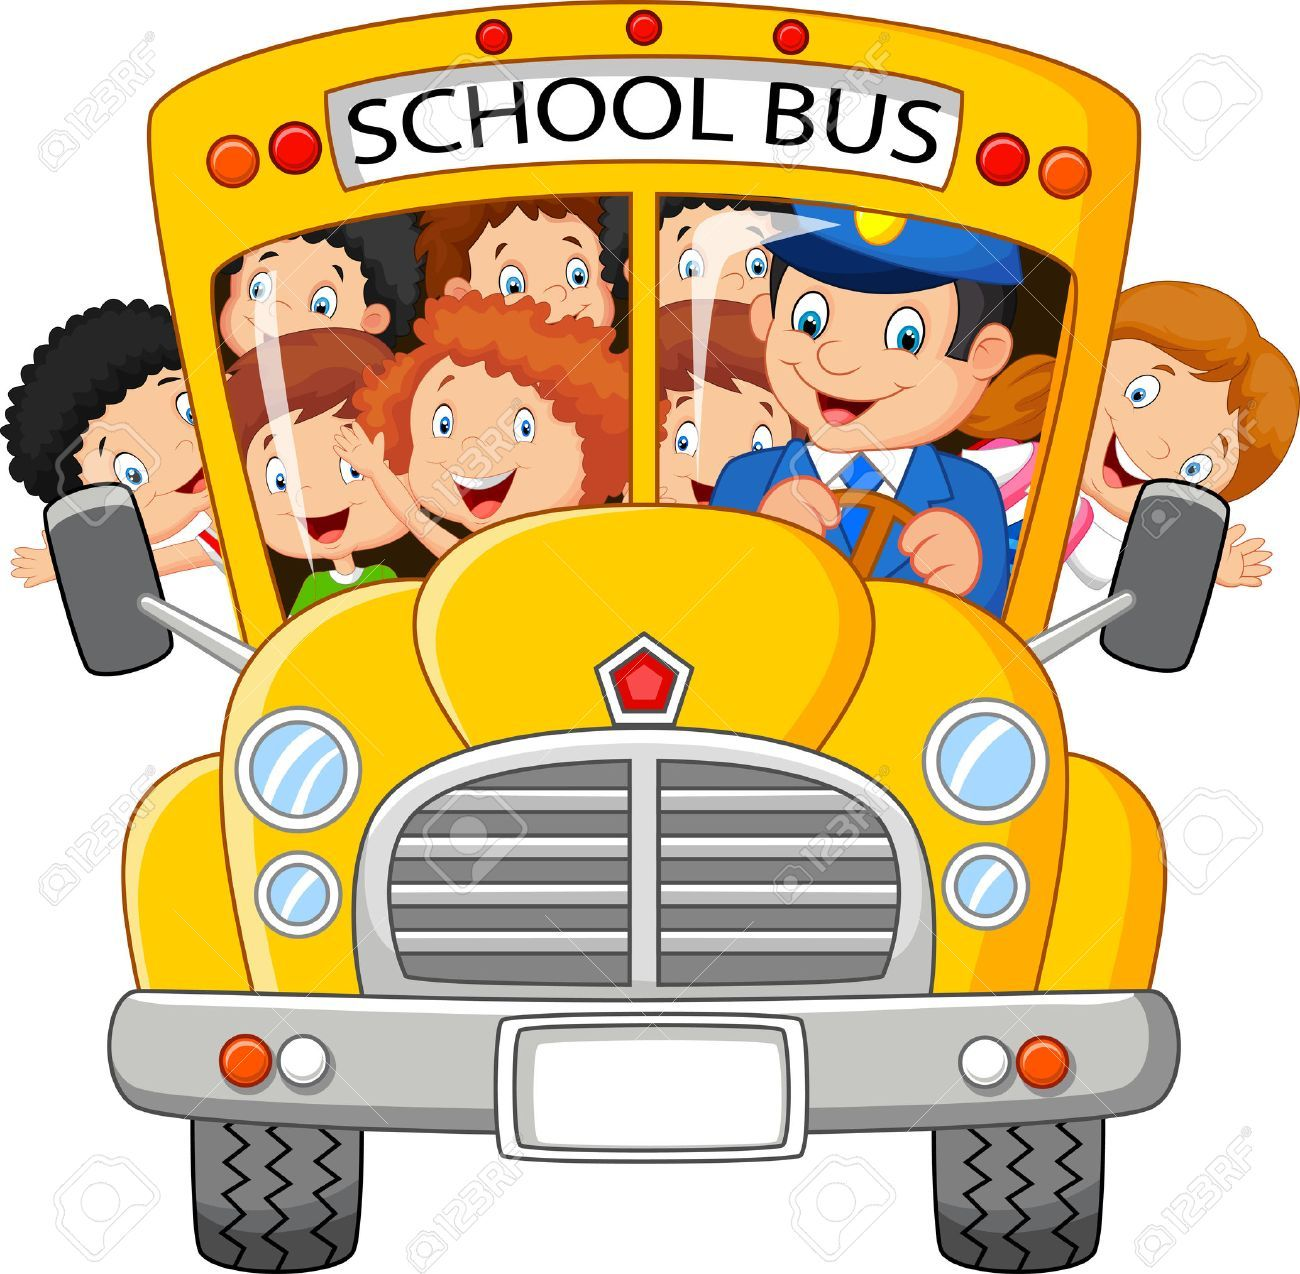 Clipart school bus pictures vector freeuse library Free animated clipart school bus 3 » Clipart Portal vector freeuse library